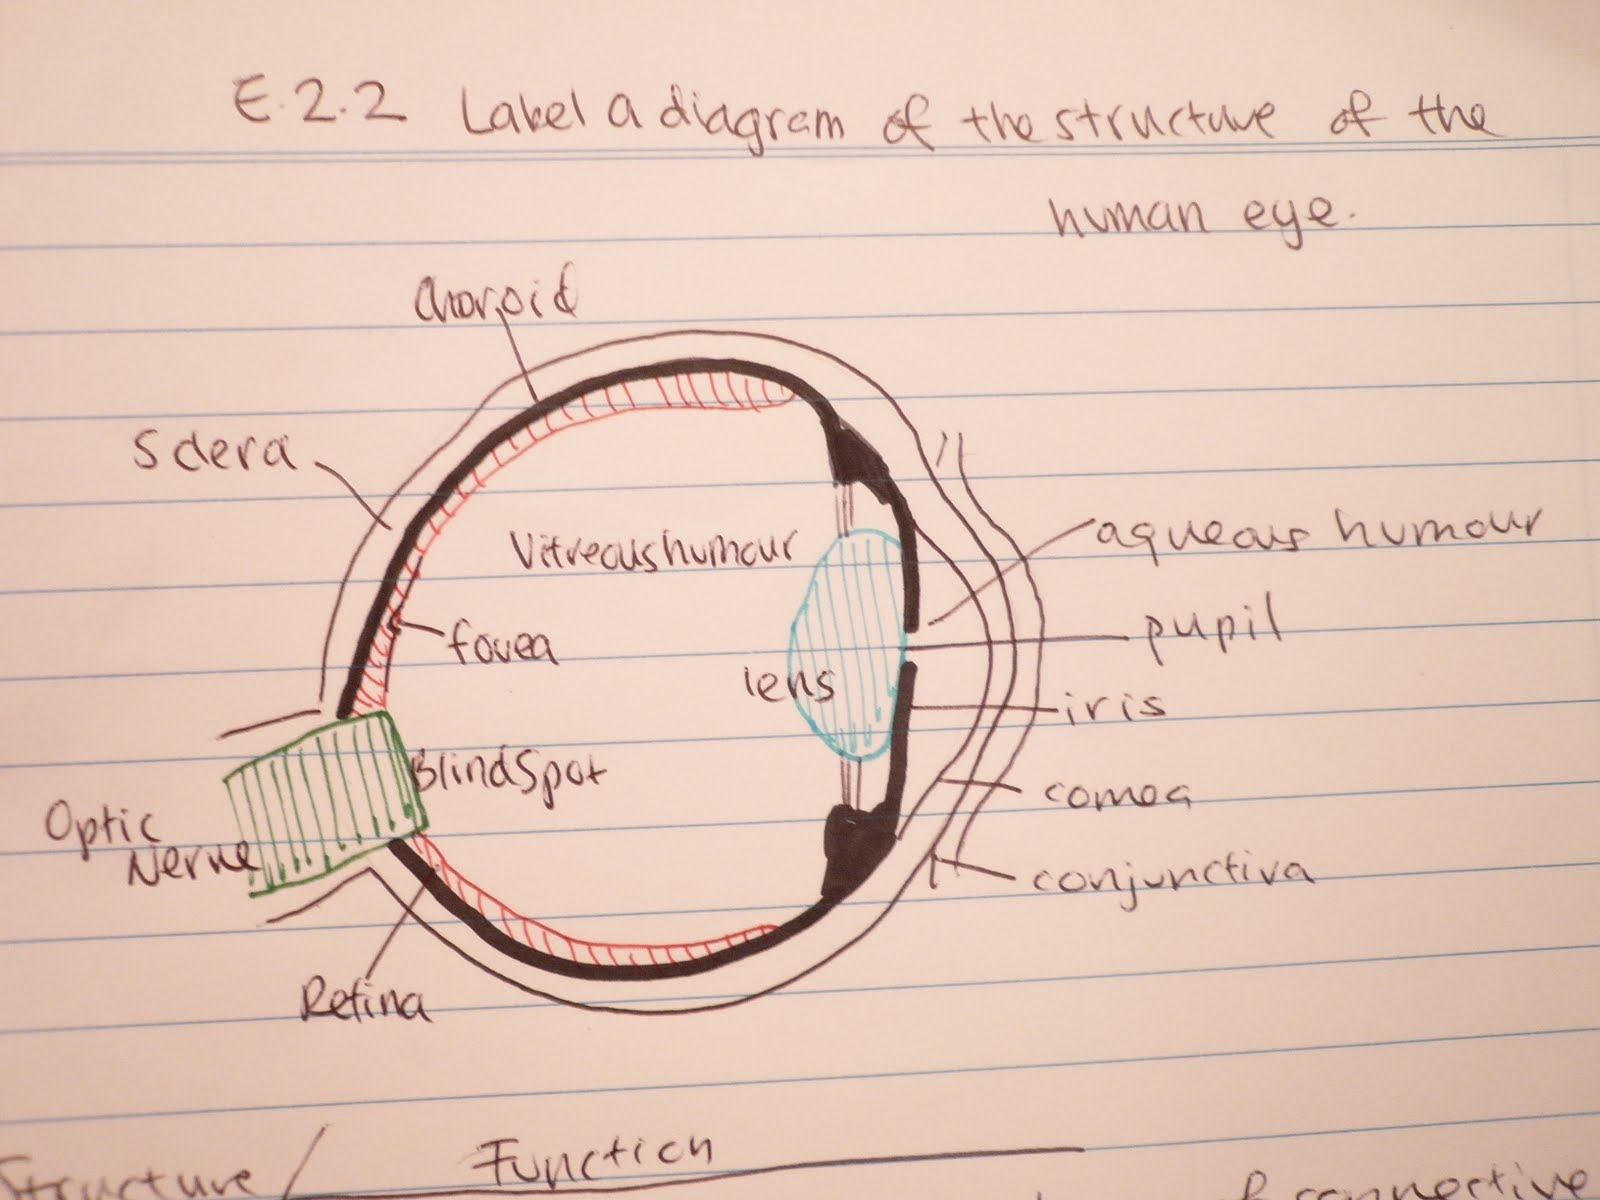 Tiffanys biology blog e22 label a diagram of the structure of e22 label a diagram of the structure of the human eye ccuart Choice Image